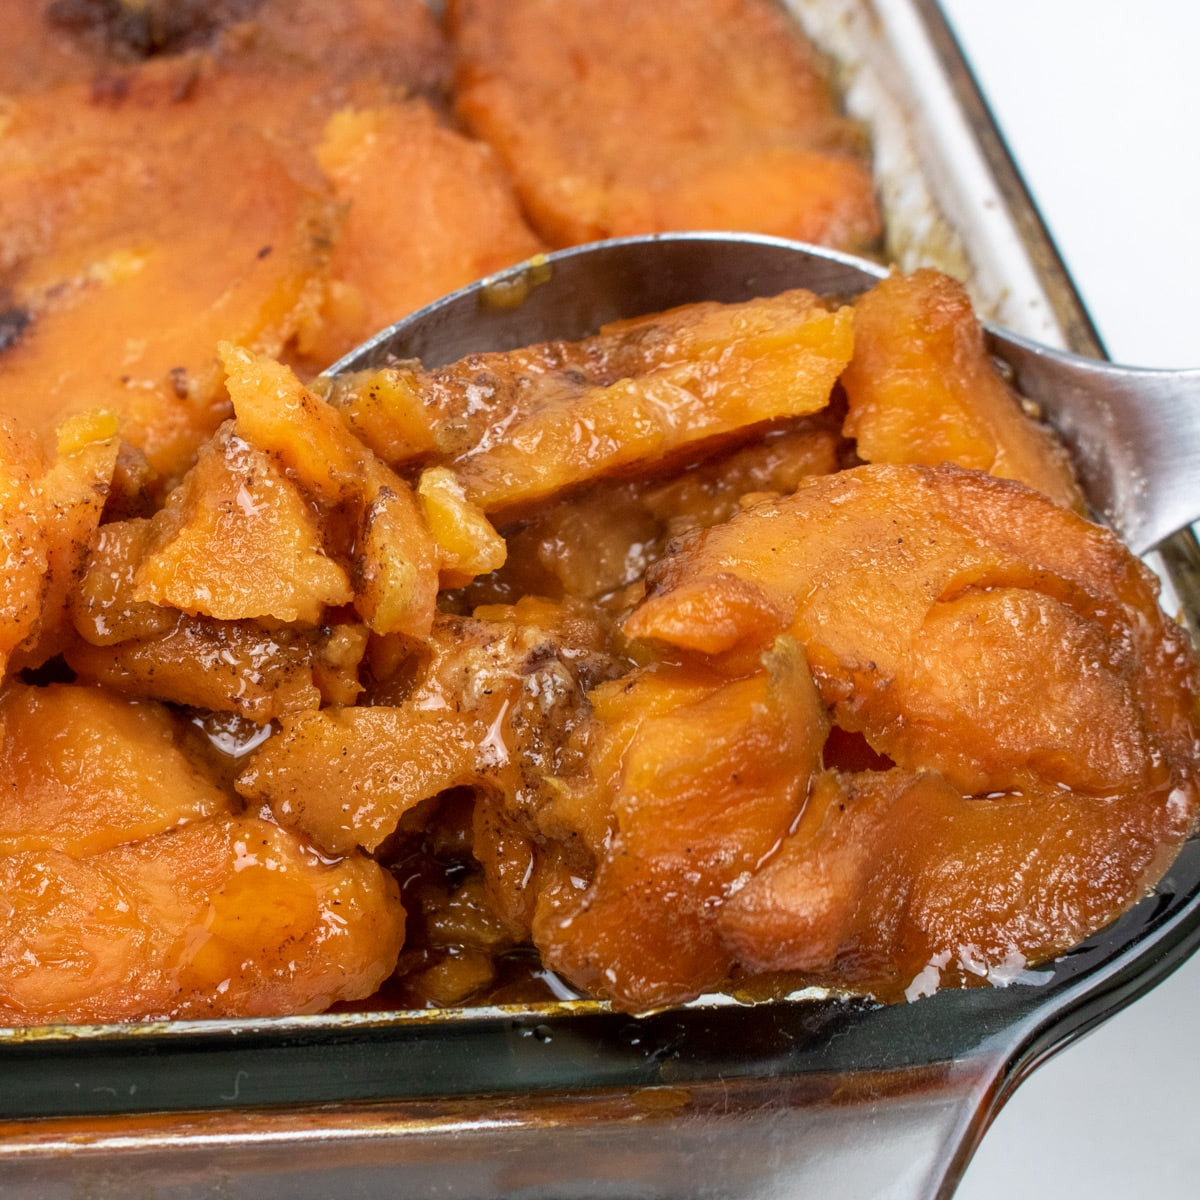 baked candied yams in a baking dish with a serving spoons